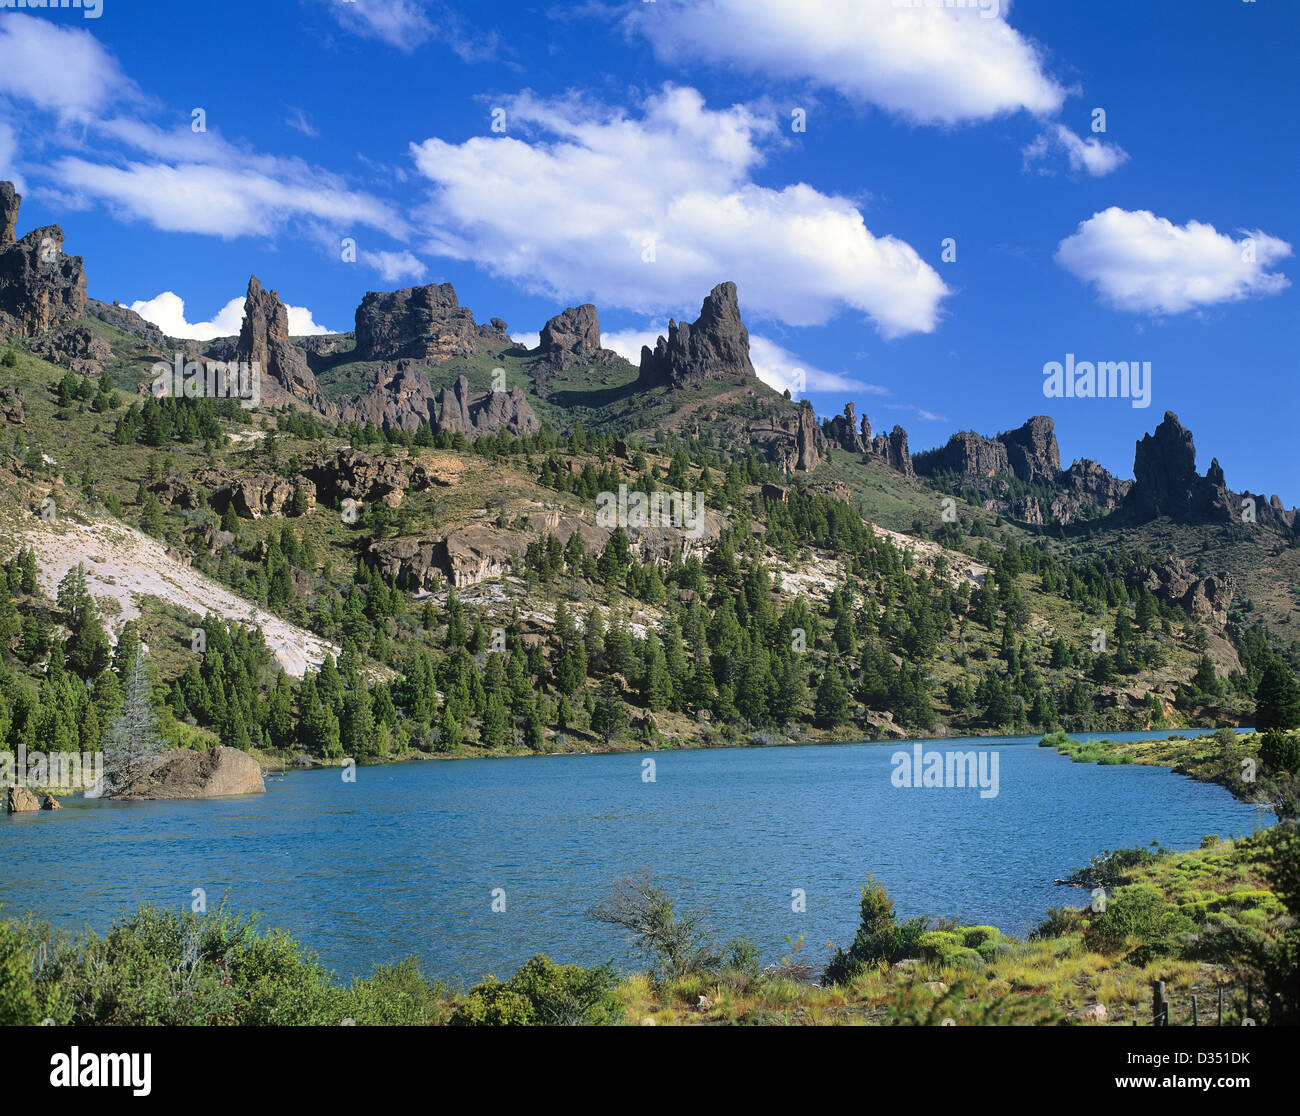 Patagonia South America >> Argentina, Patagonia, Provincia de Rio Negro / Neuquen, 'Valle Stock Photo: 53585999 - Alamy